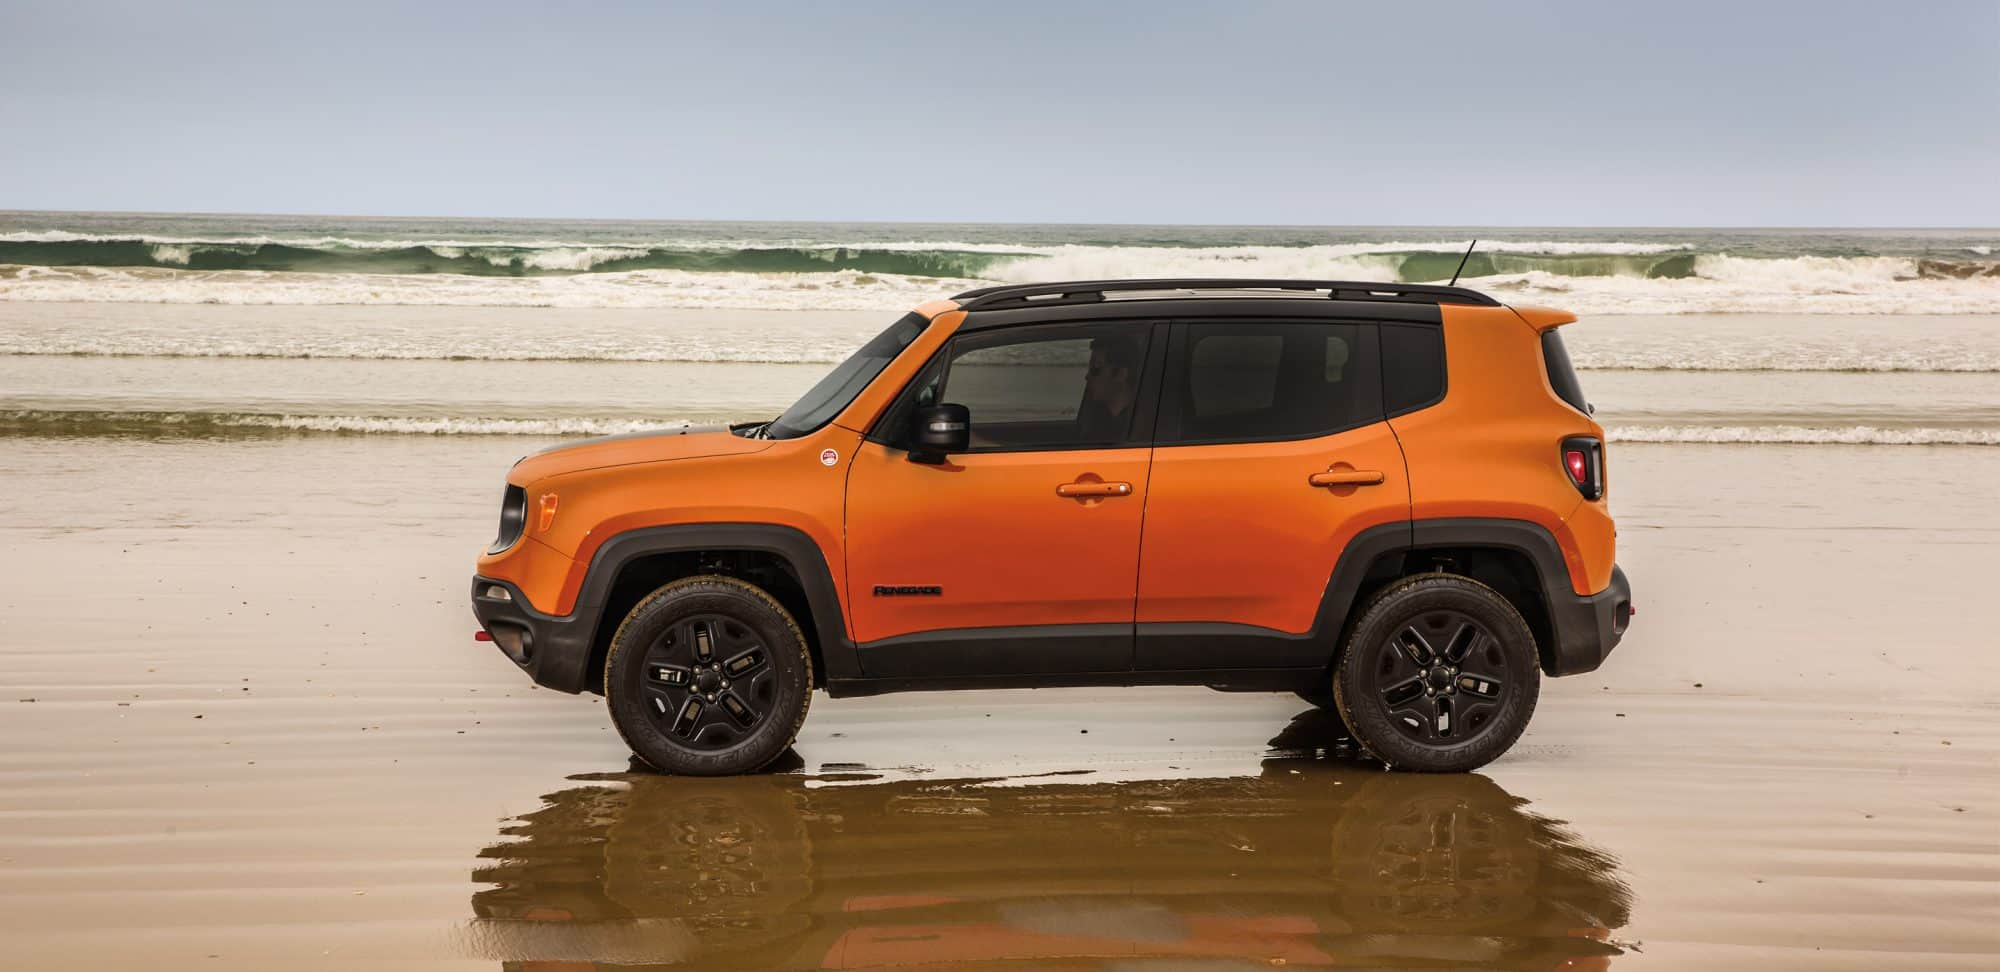 2018 JeepRenegade